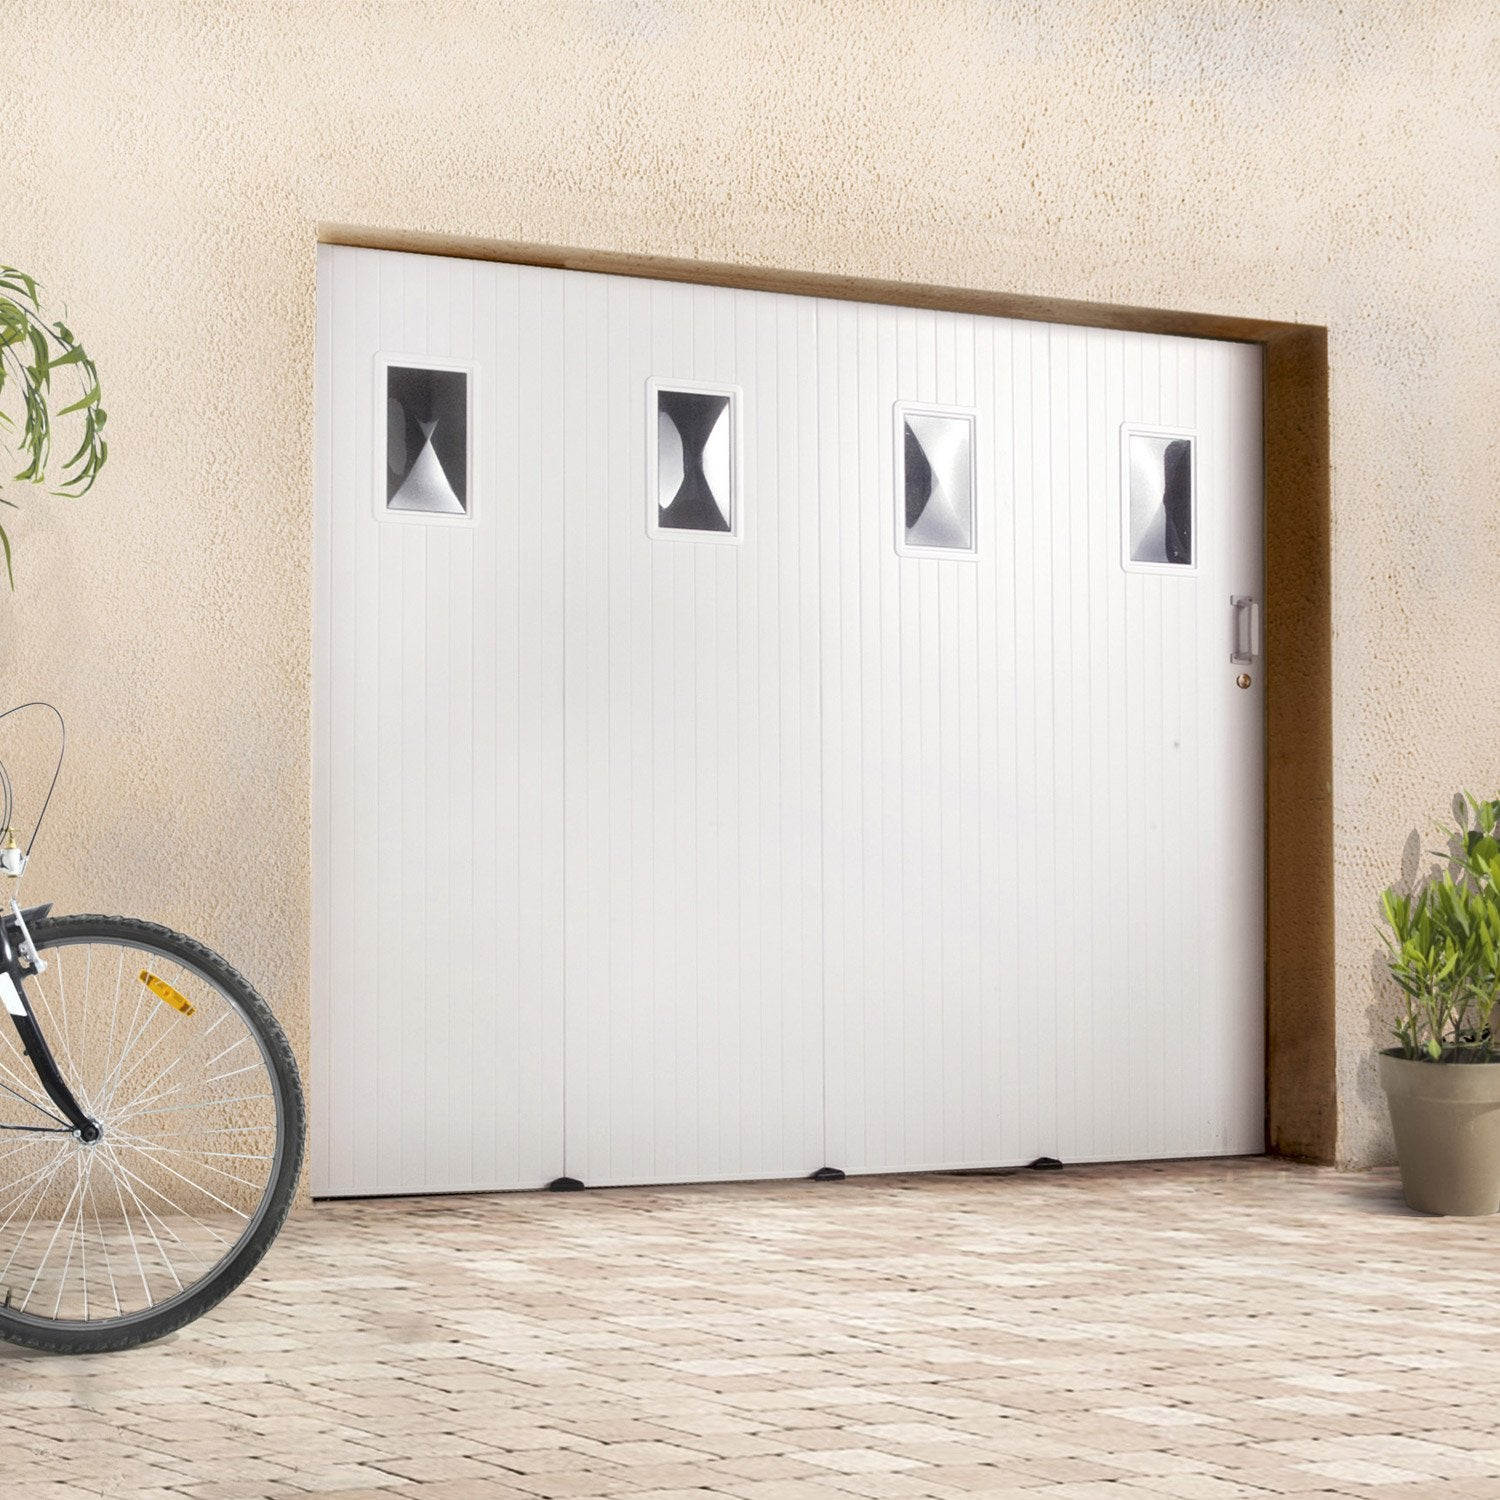 Pose d 39 une porte de garage coulissante lat rale leroy merlin for Installer chatiere porte garage